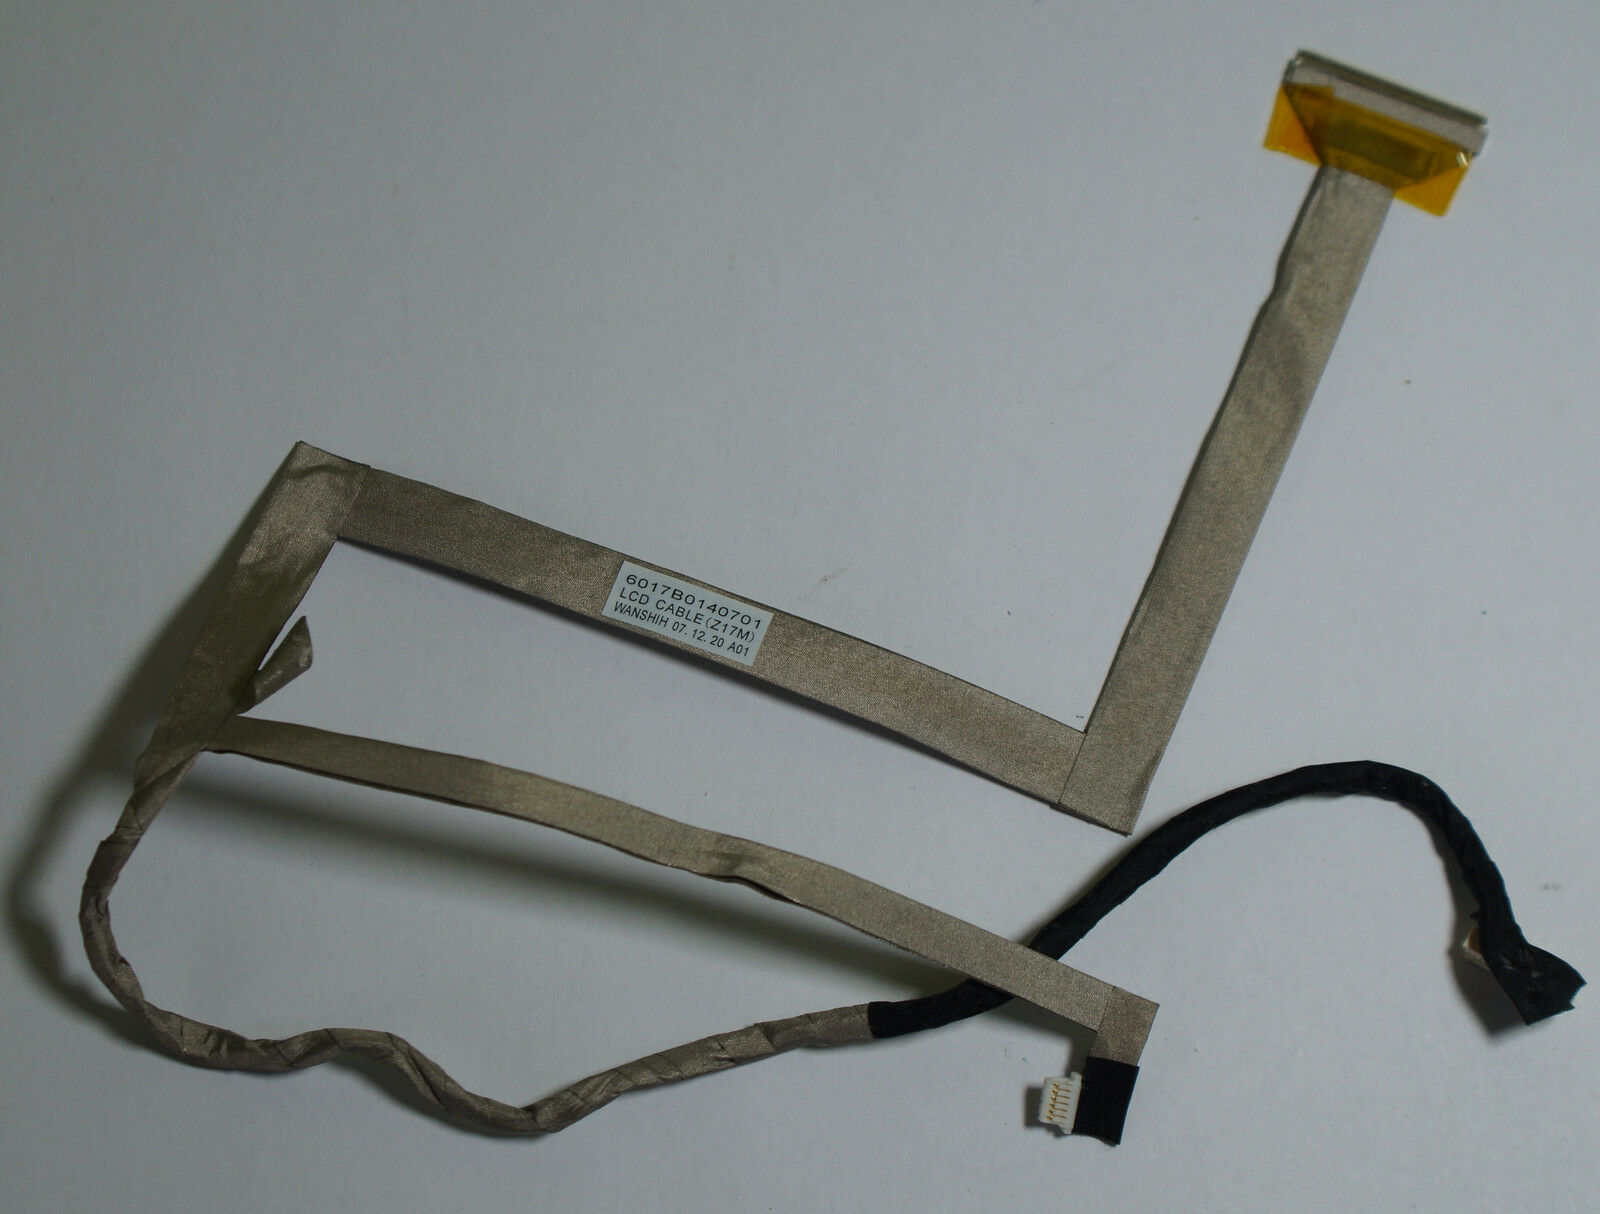 LCD Cable 6017B0140701 from Fujitsu Esprimo Mobile V5535 Top!